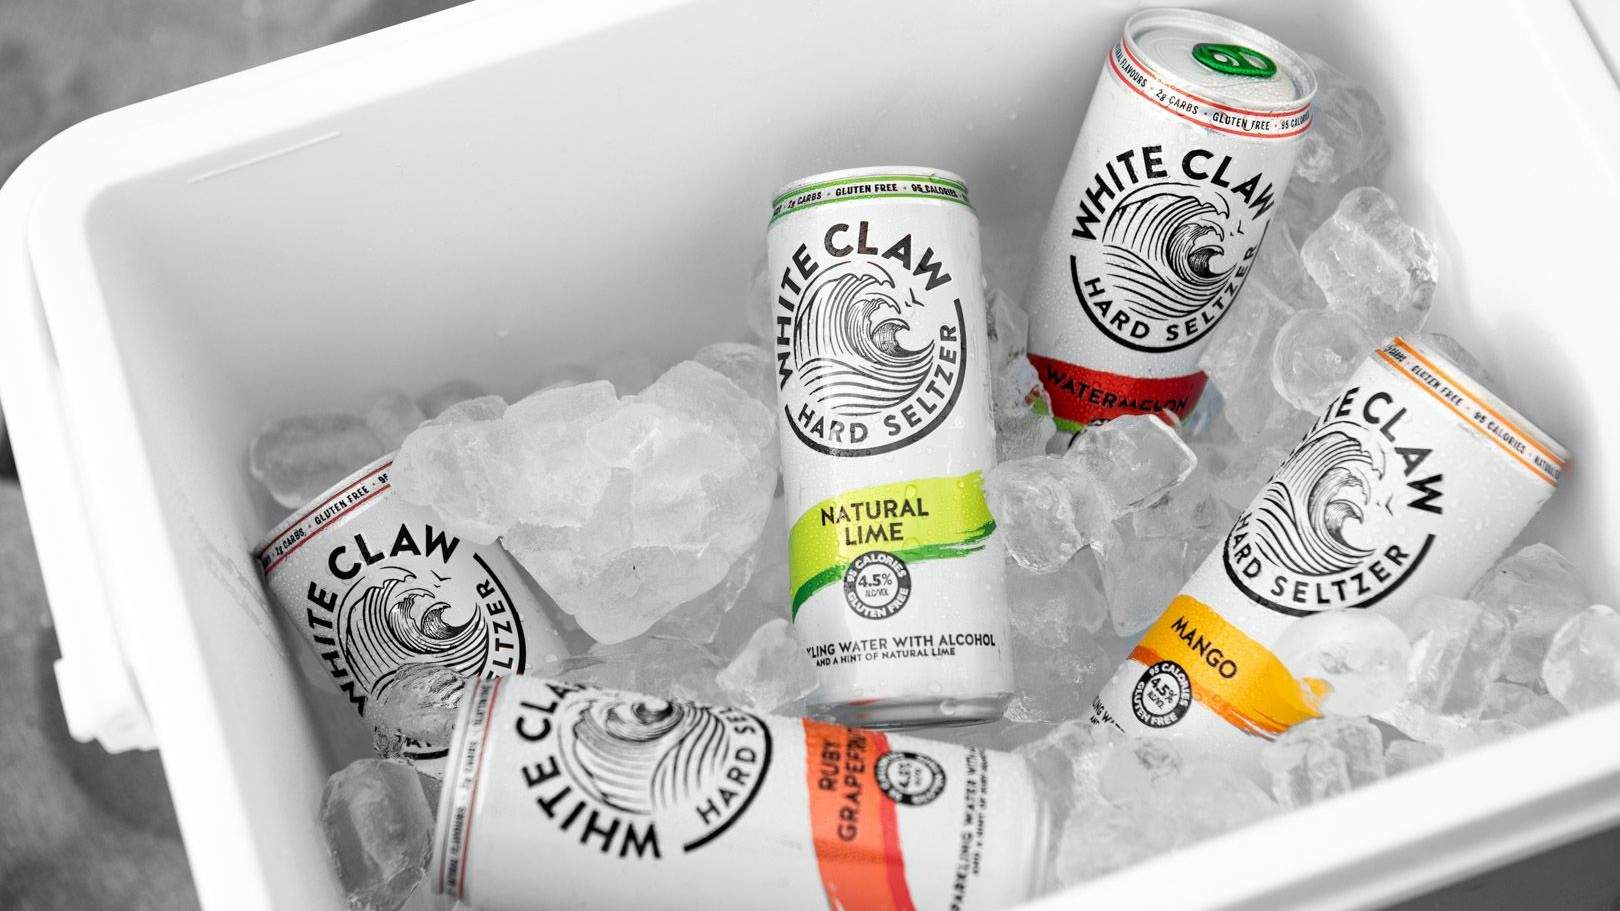 White Claw Is Dropping New Variety Packs So You Can Relish Being Seltzer-Indecisive